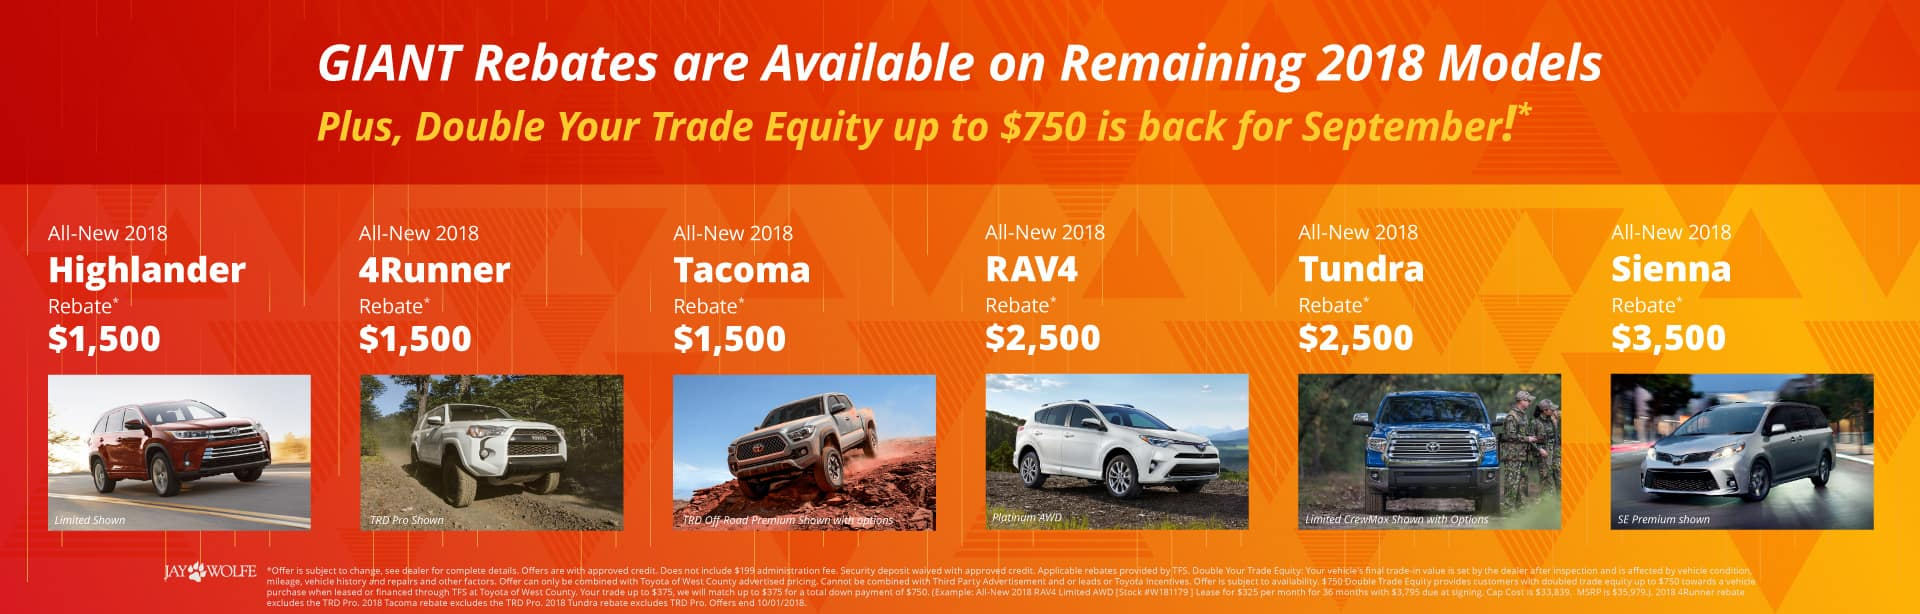 Giant Rebates Available on Remaining 2018 Toyota Models